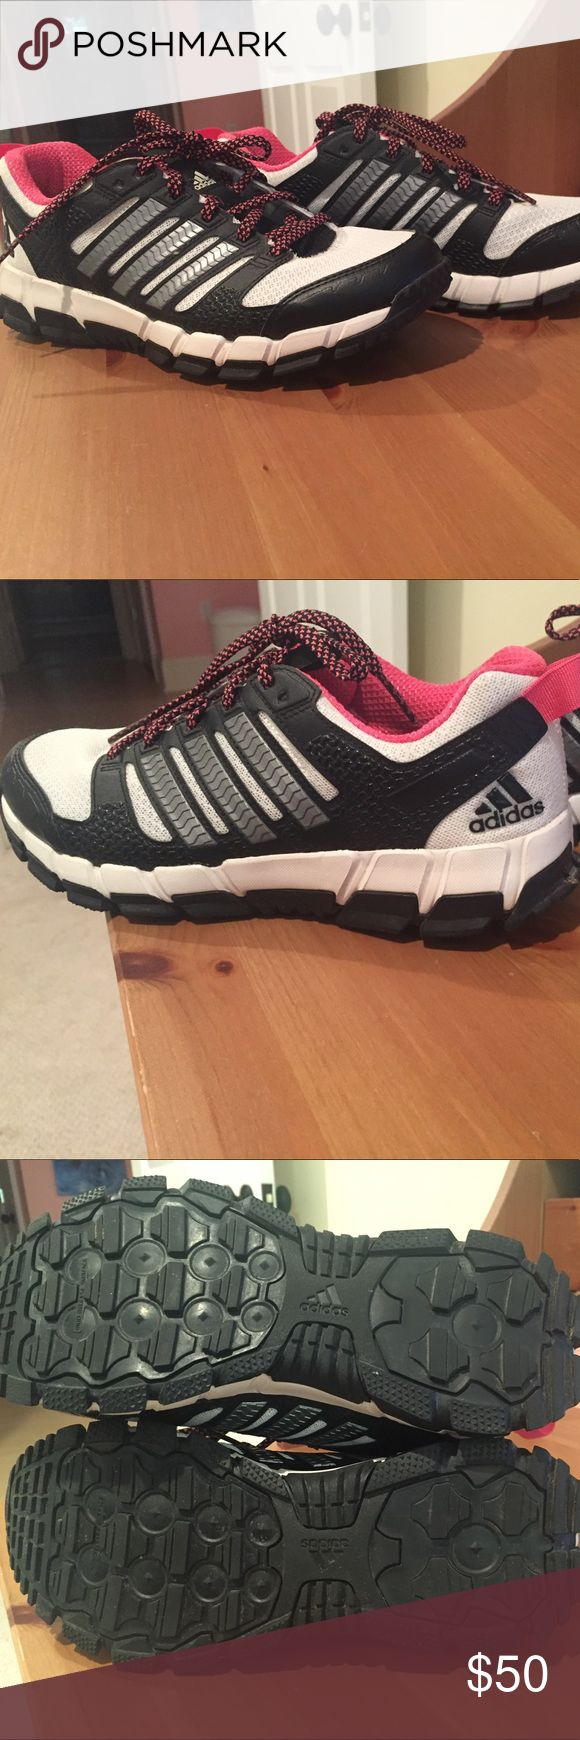 Adidas running shoes Basically brand new adidas running shoes. Pink, black and white. Size 7.5 adidas Shoes Athletic Shoes